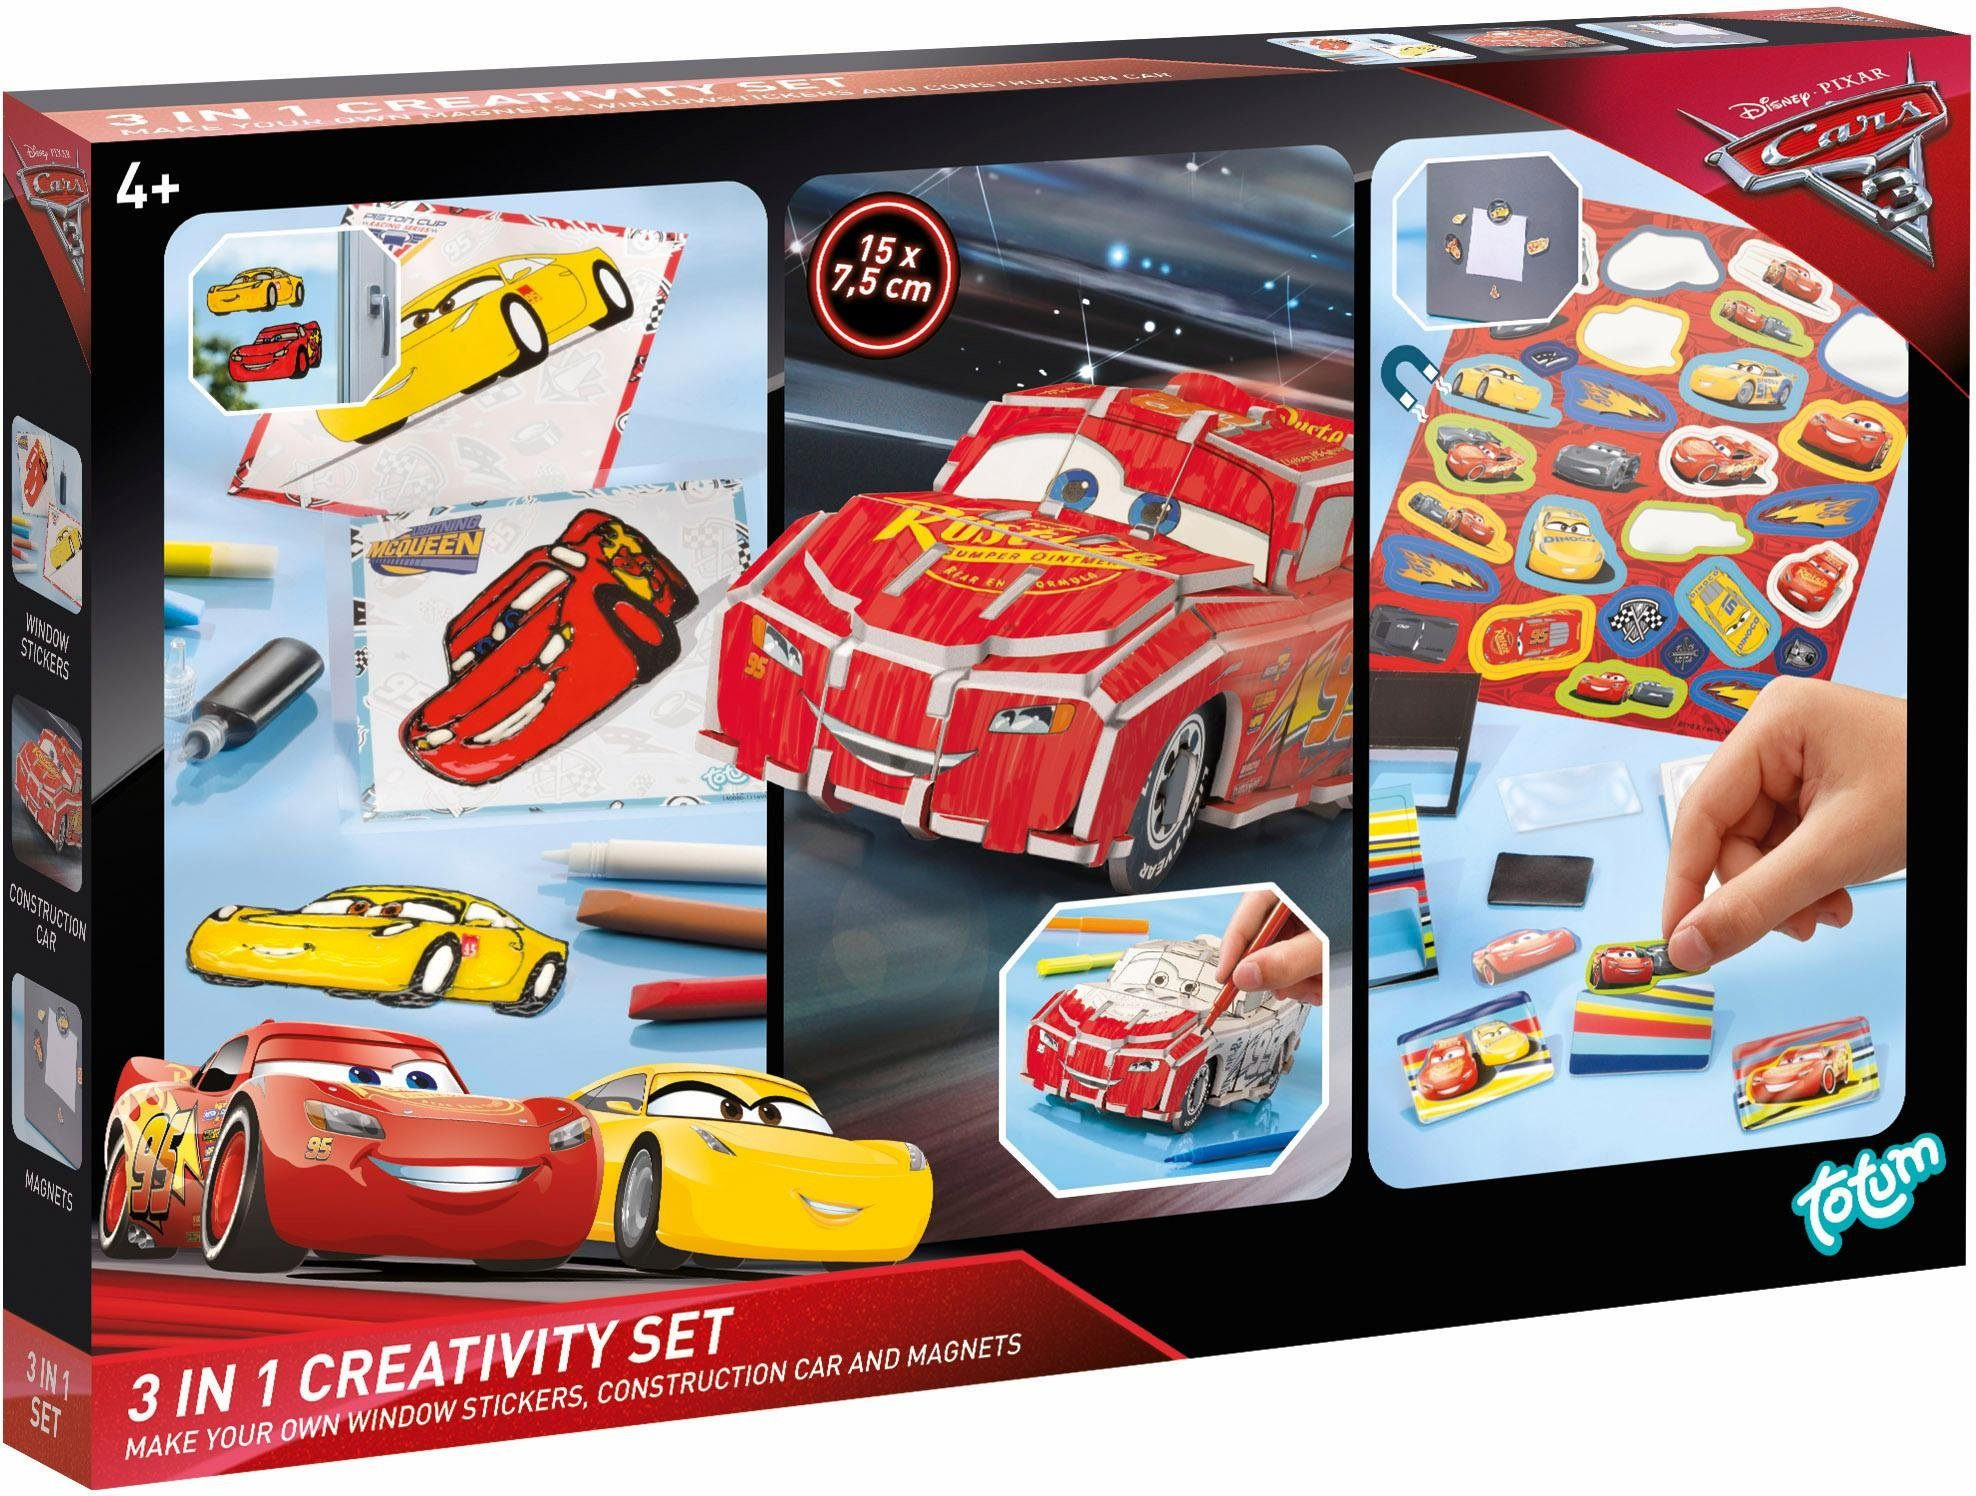 totum Kreativset Magnete,Fensterbilder/Construction Car, »Disney Pixar Cars 3, 3in1 Creativity Set«